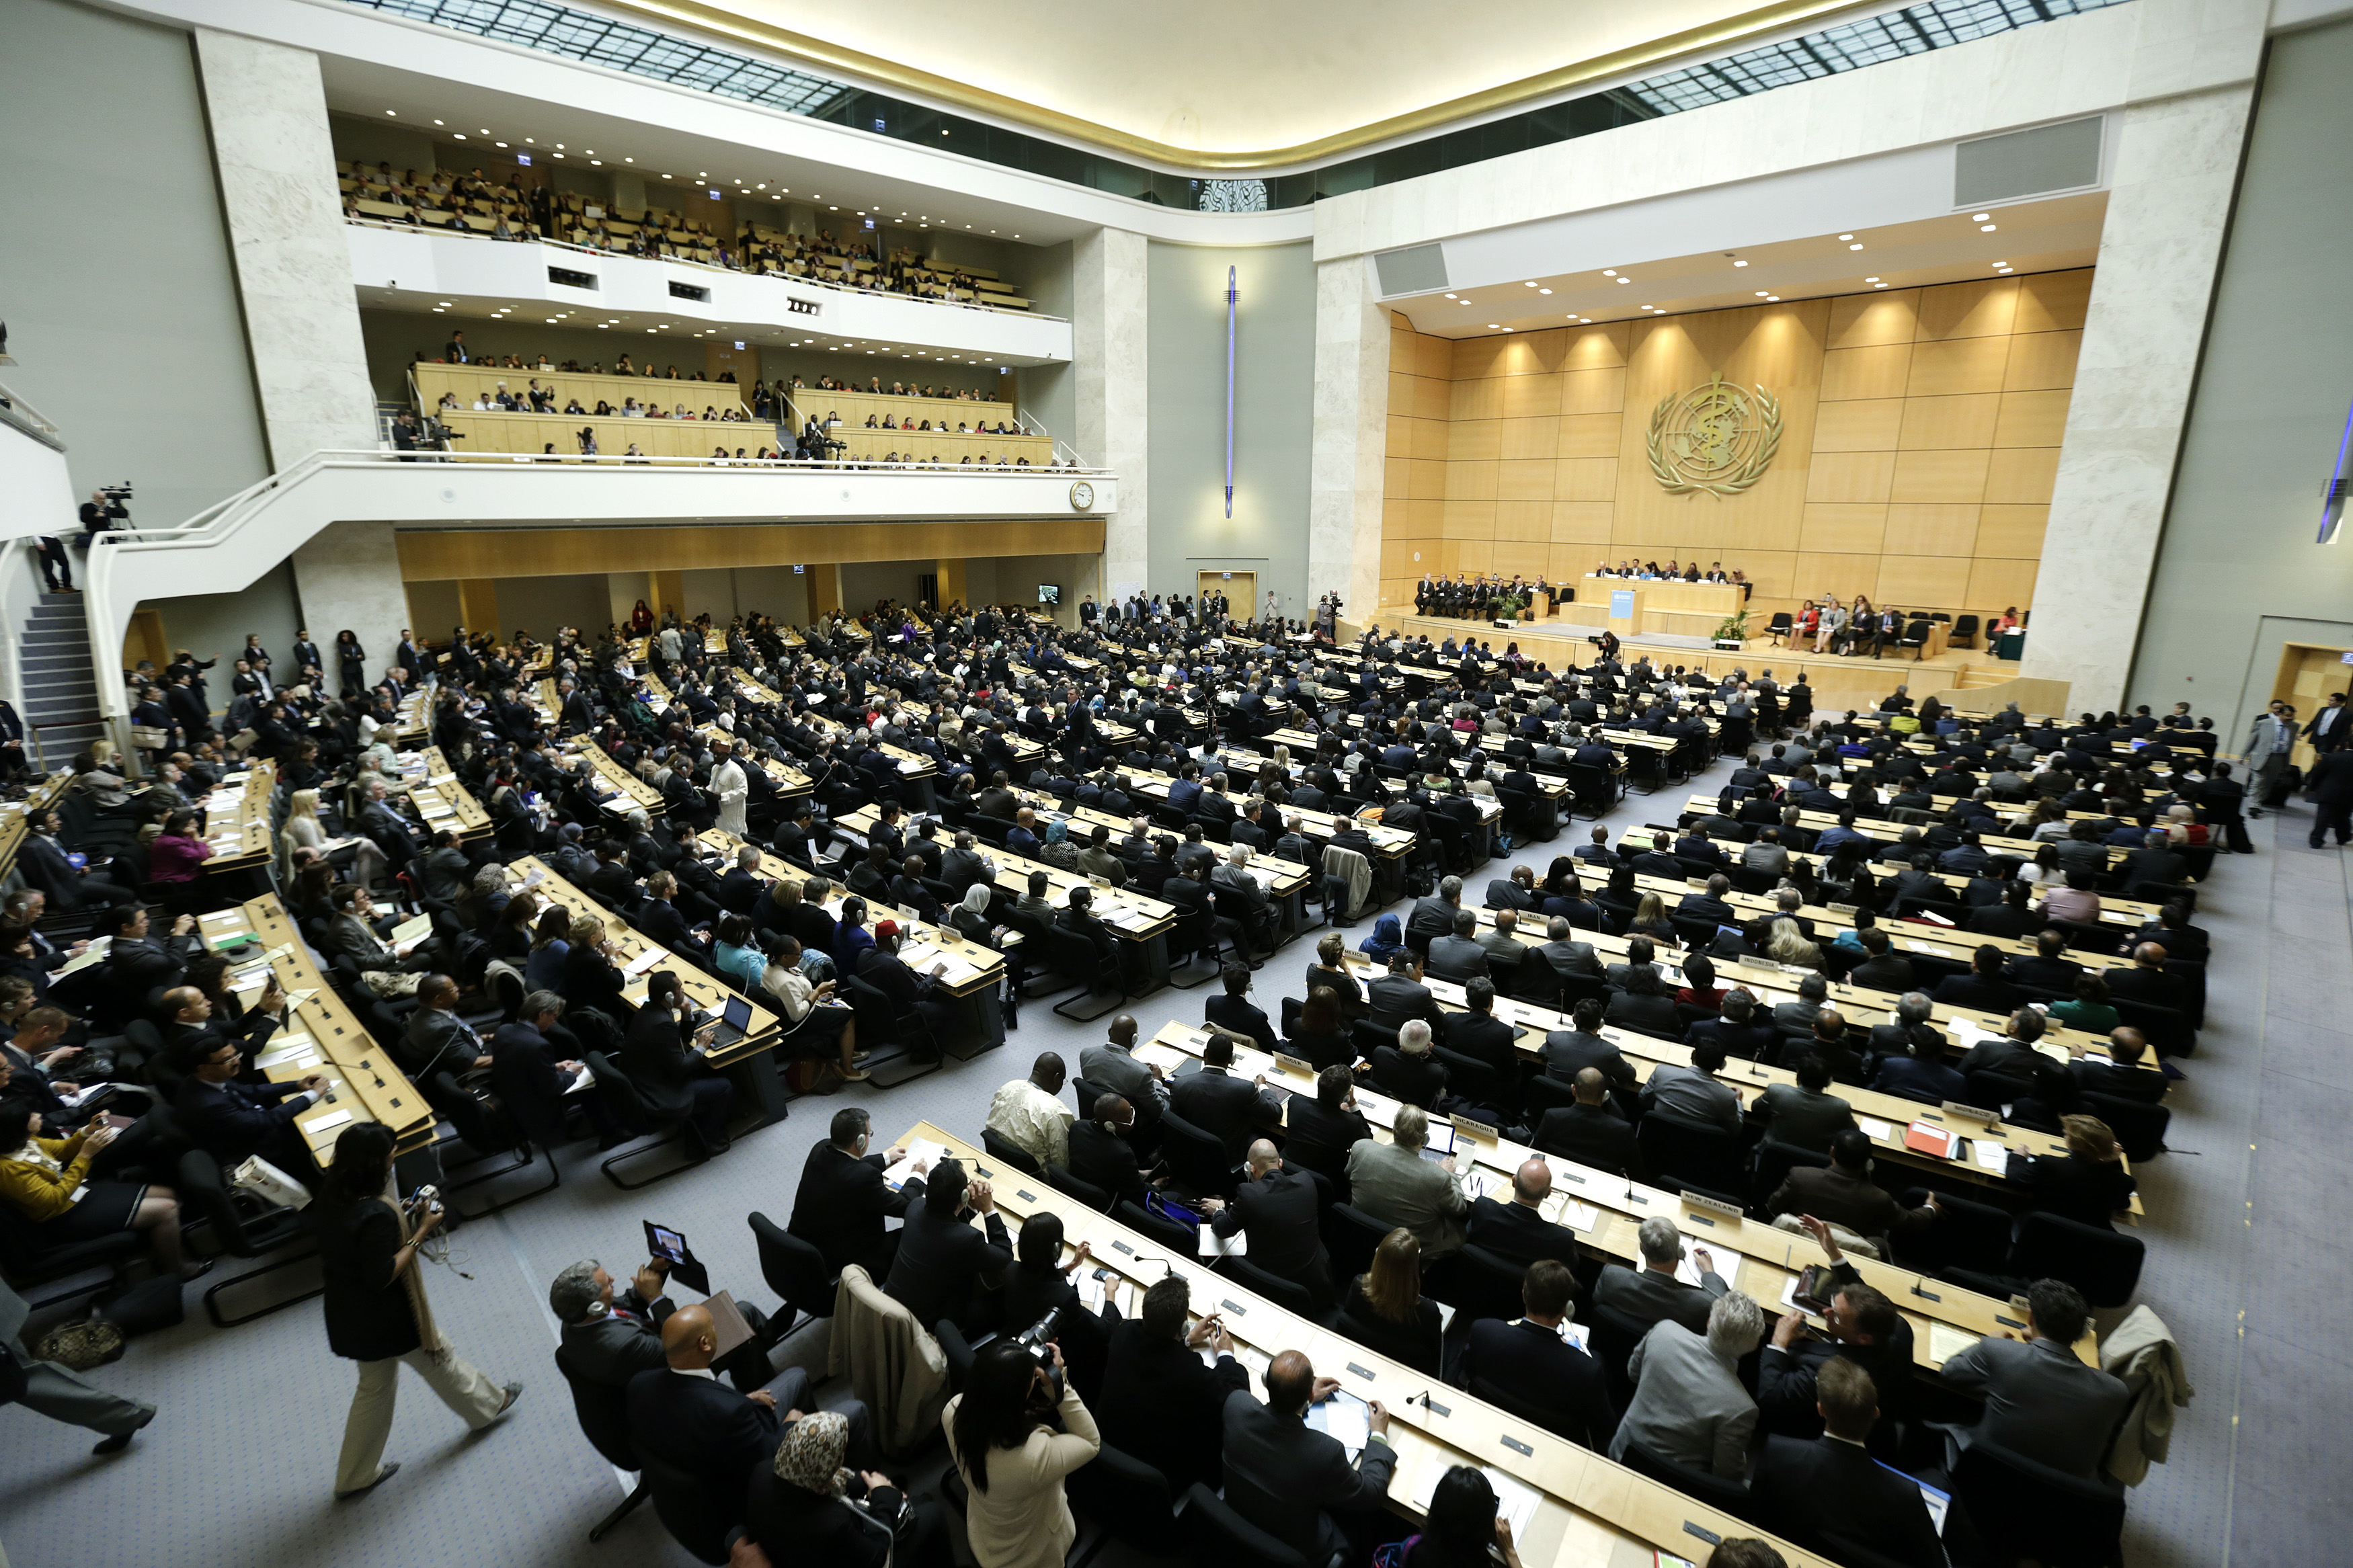 A general view of the 66th World Health Assembly at the United Nations European headquarters in Geneva May 20, 2013. The World Health Assembly is the annual meeting of the World Health Organization's (WHO) 194 Member States and is its highest decision-making body. This year marks the 66th World Health Assembly